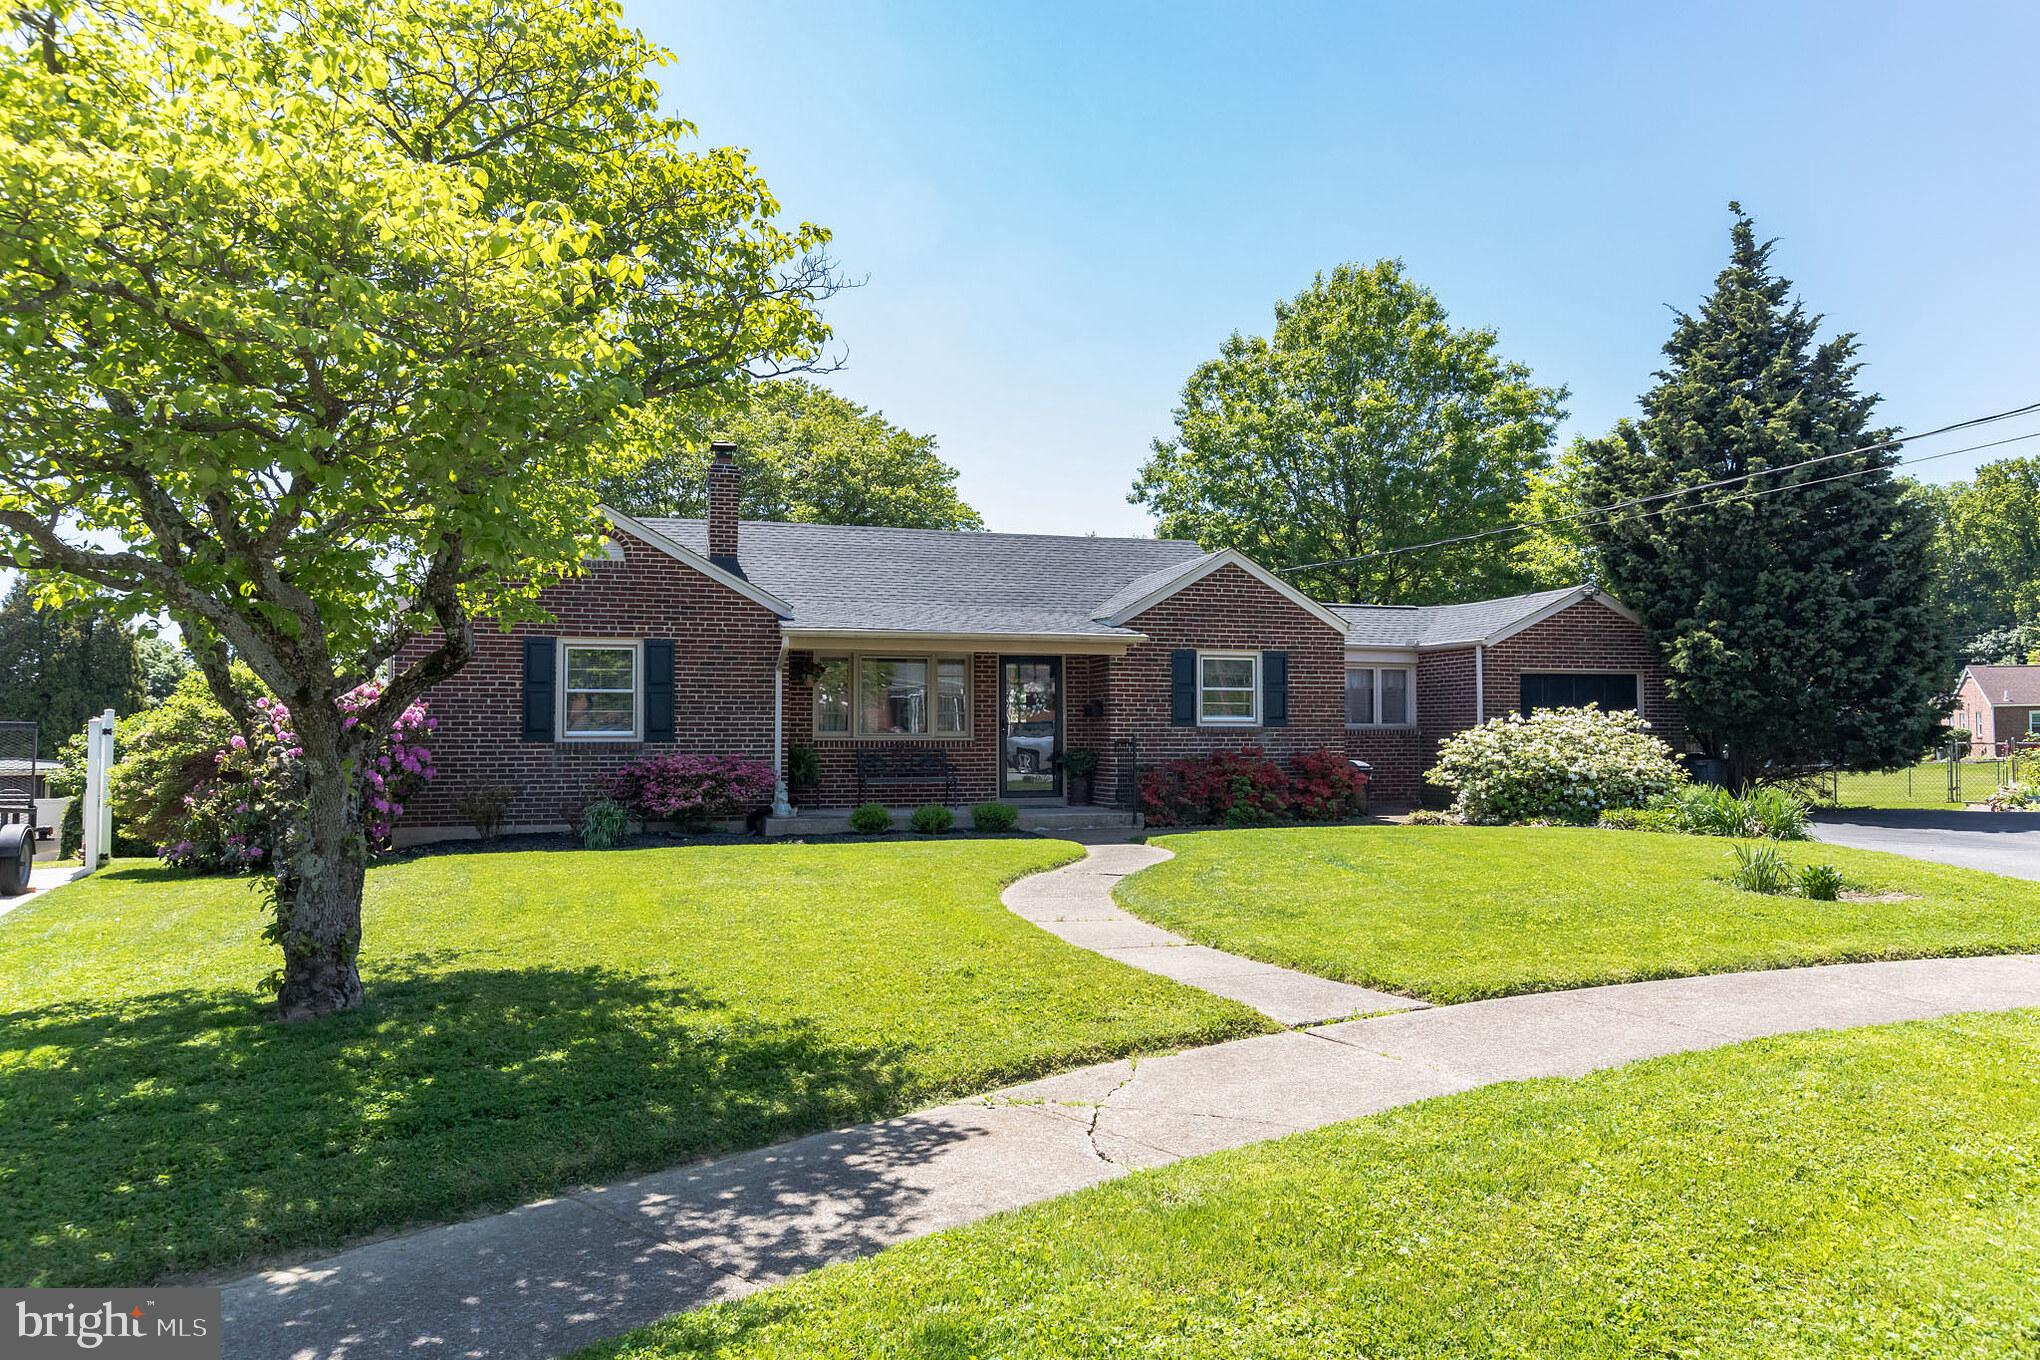 Charming Brick Ranch with great curb appeal, situated on a quiet cul-de sac street. Enter into the b